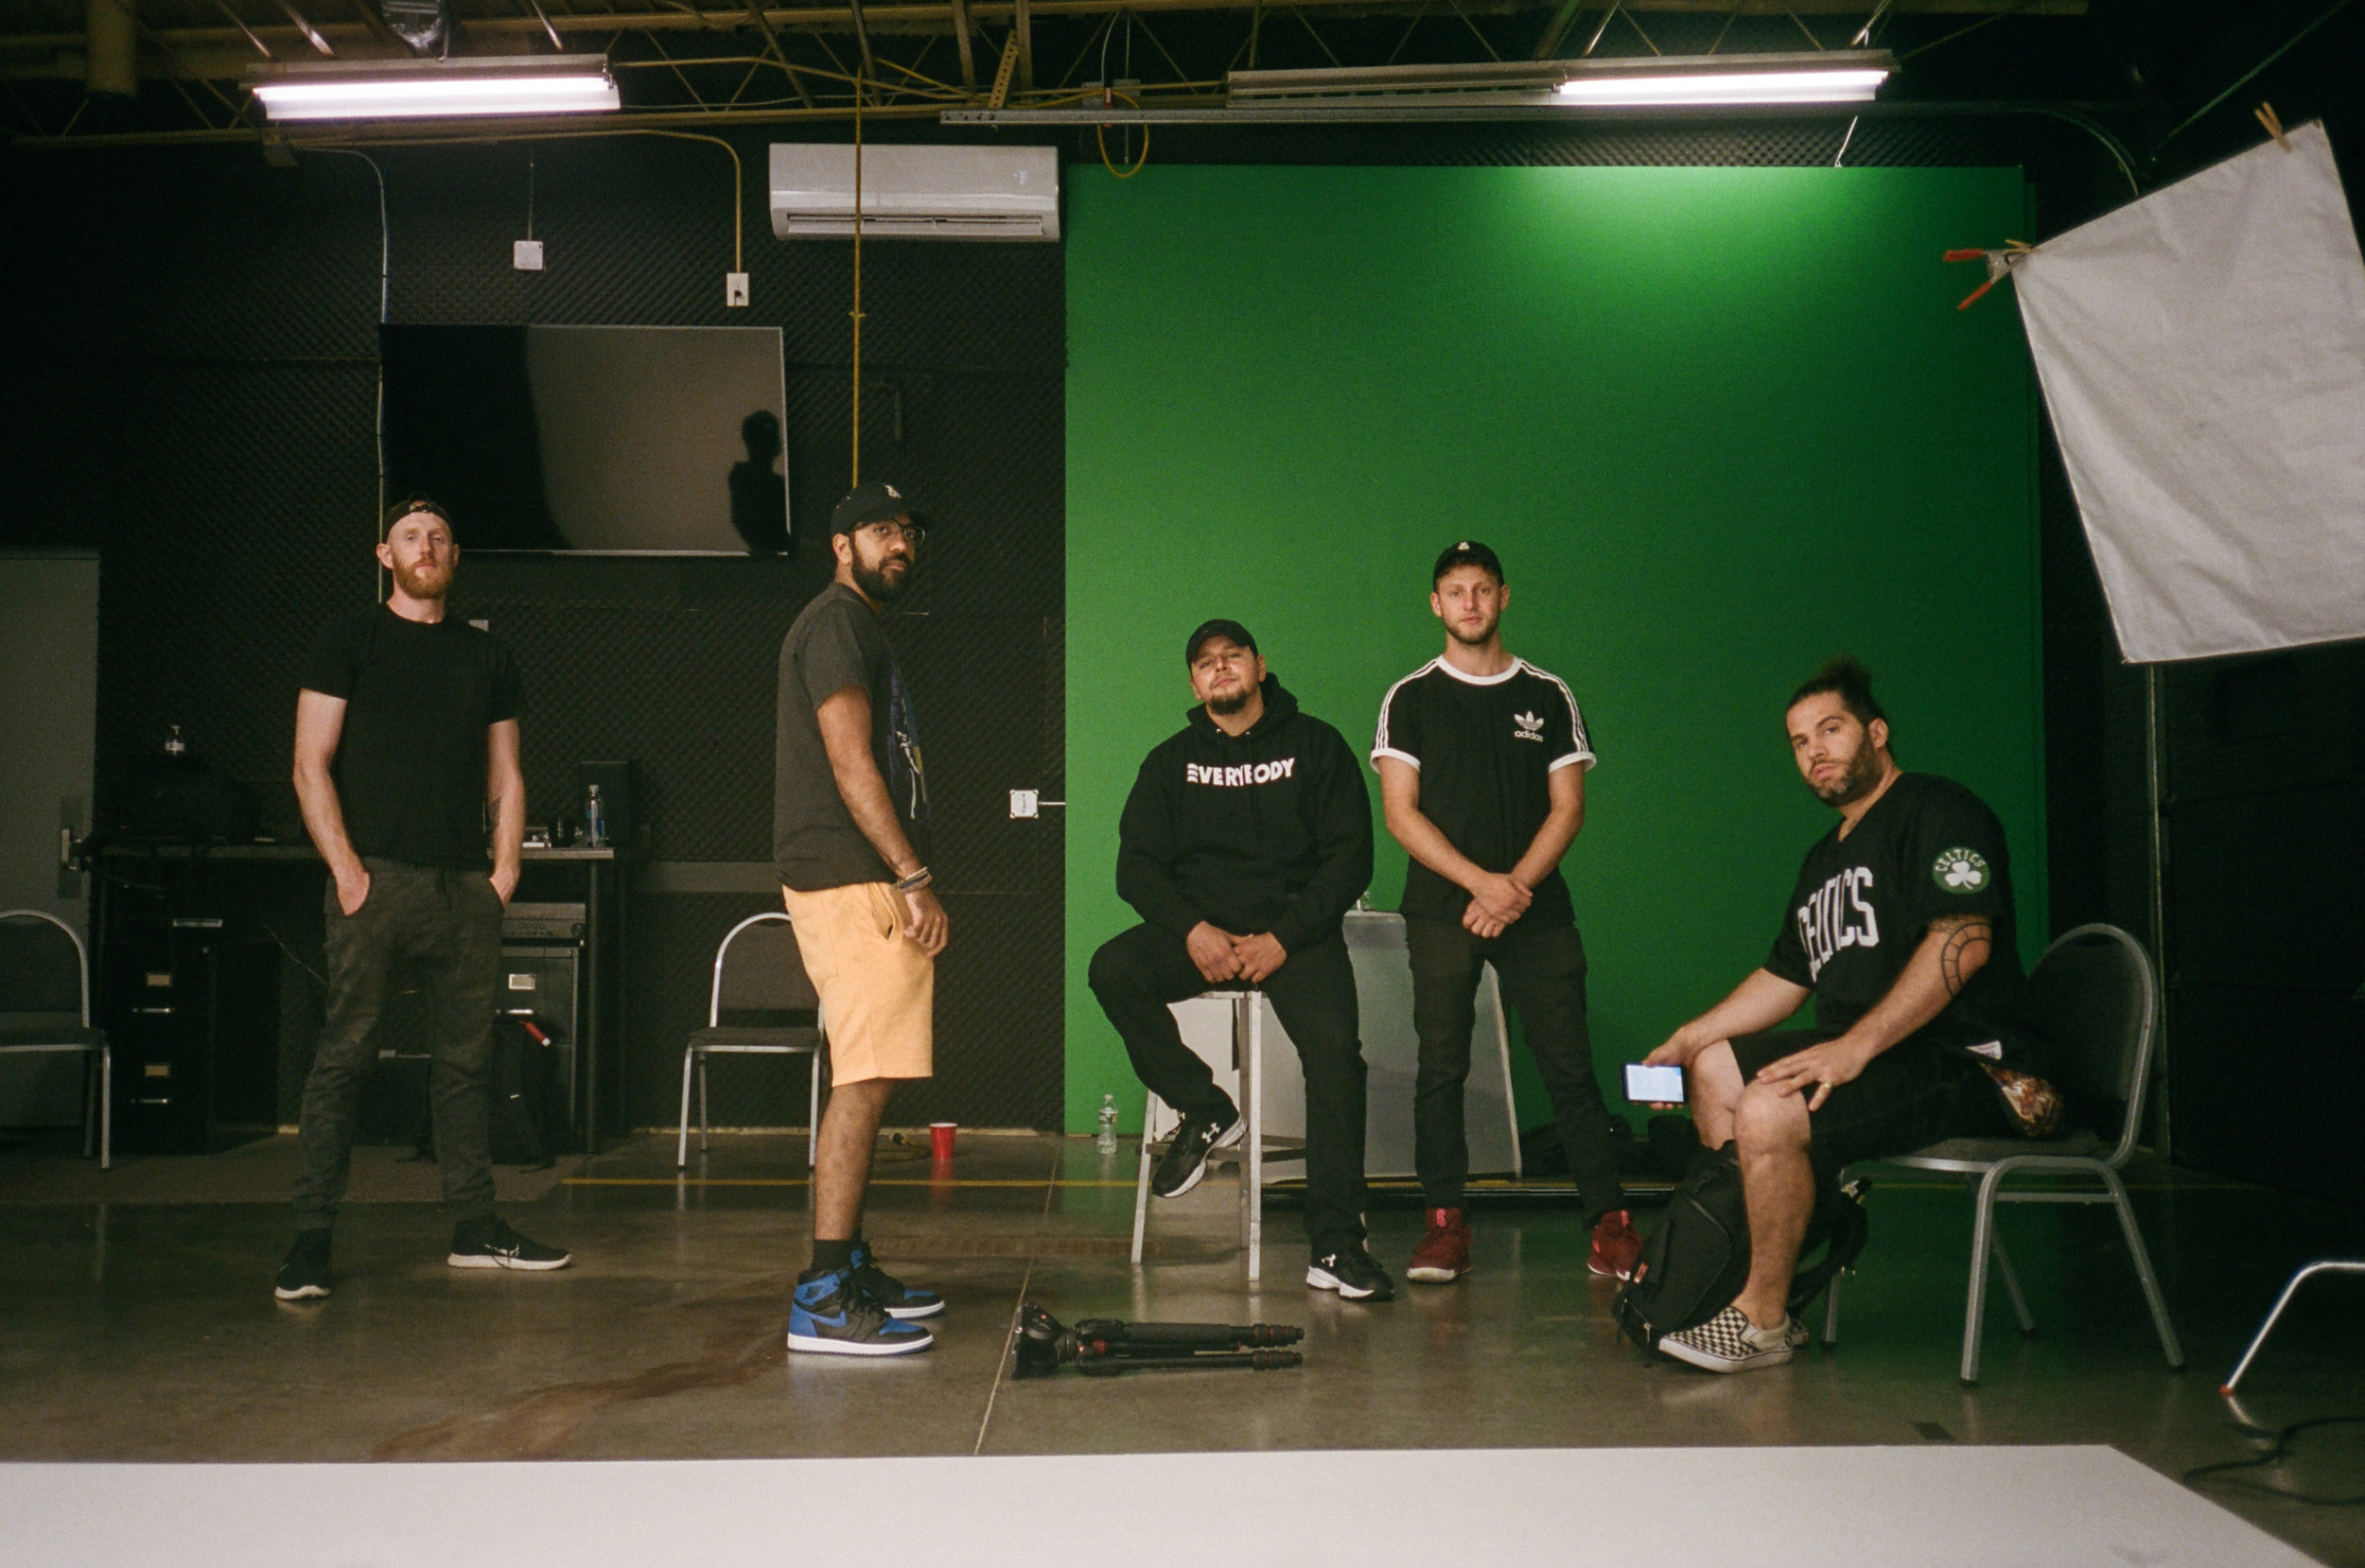 BTS from a spot shoot we had for Logic's 1-800 music video